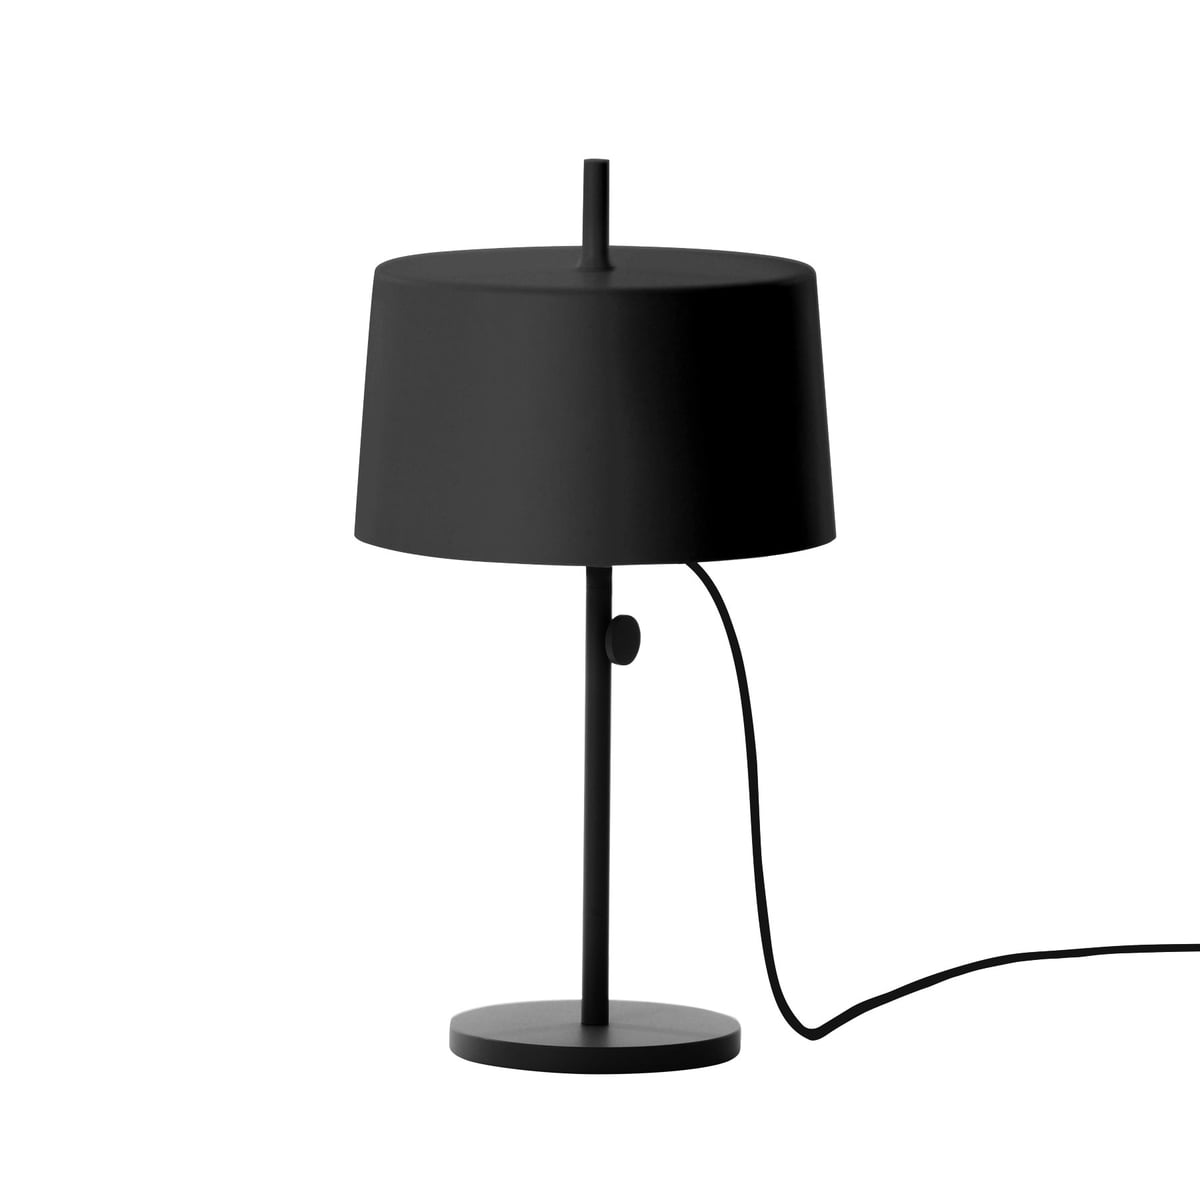 Nendo table lamp cylinder w132t2 in the shop wstberg nendo table lamp cylinder w132t2 black aloadofball Image collections